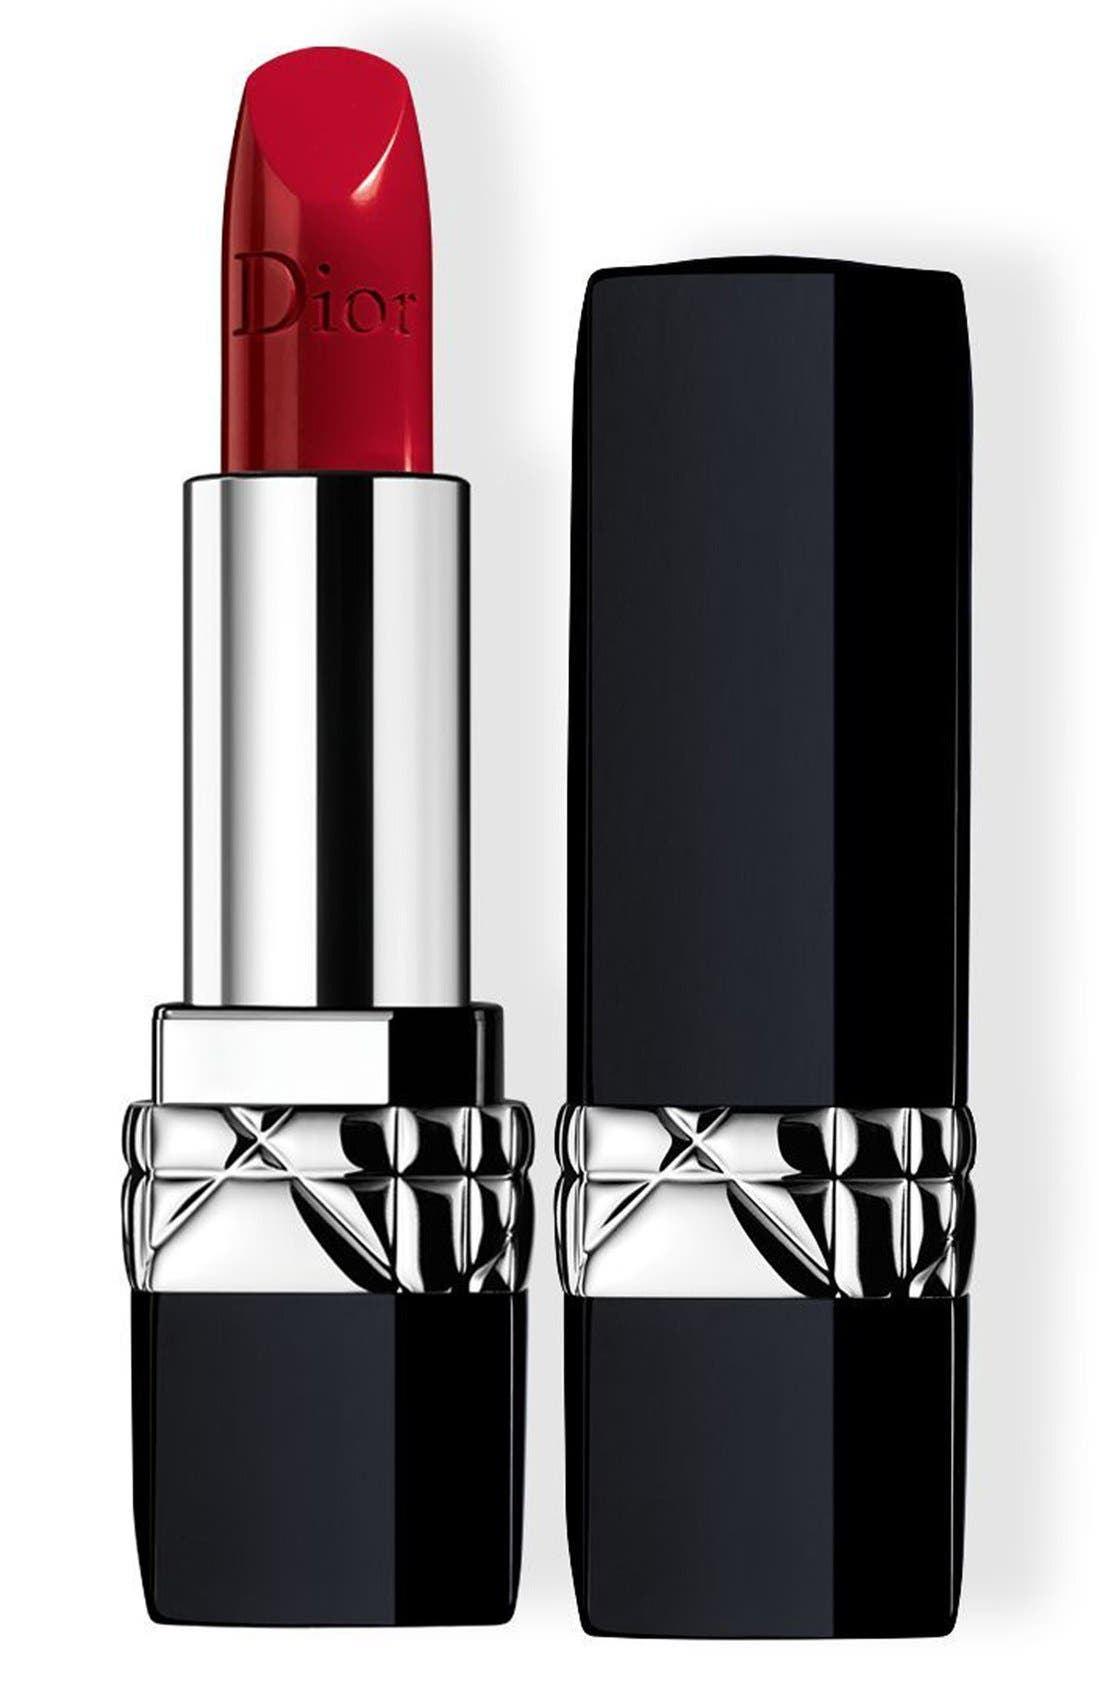 Dior Couture Color Rouge Dior Lipstick - 852 Plaza